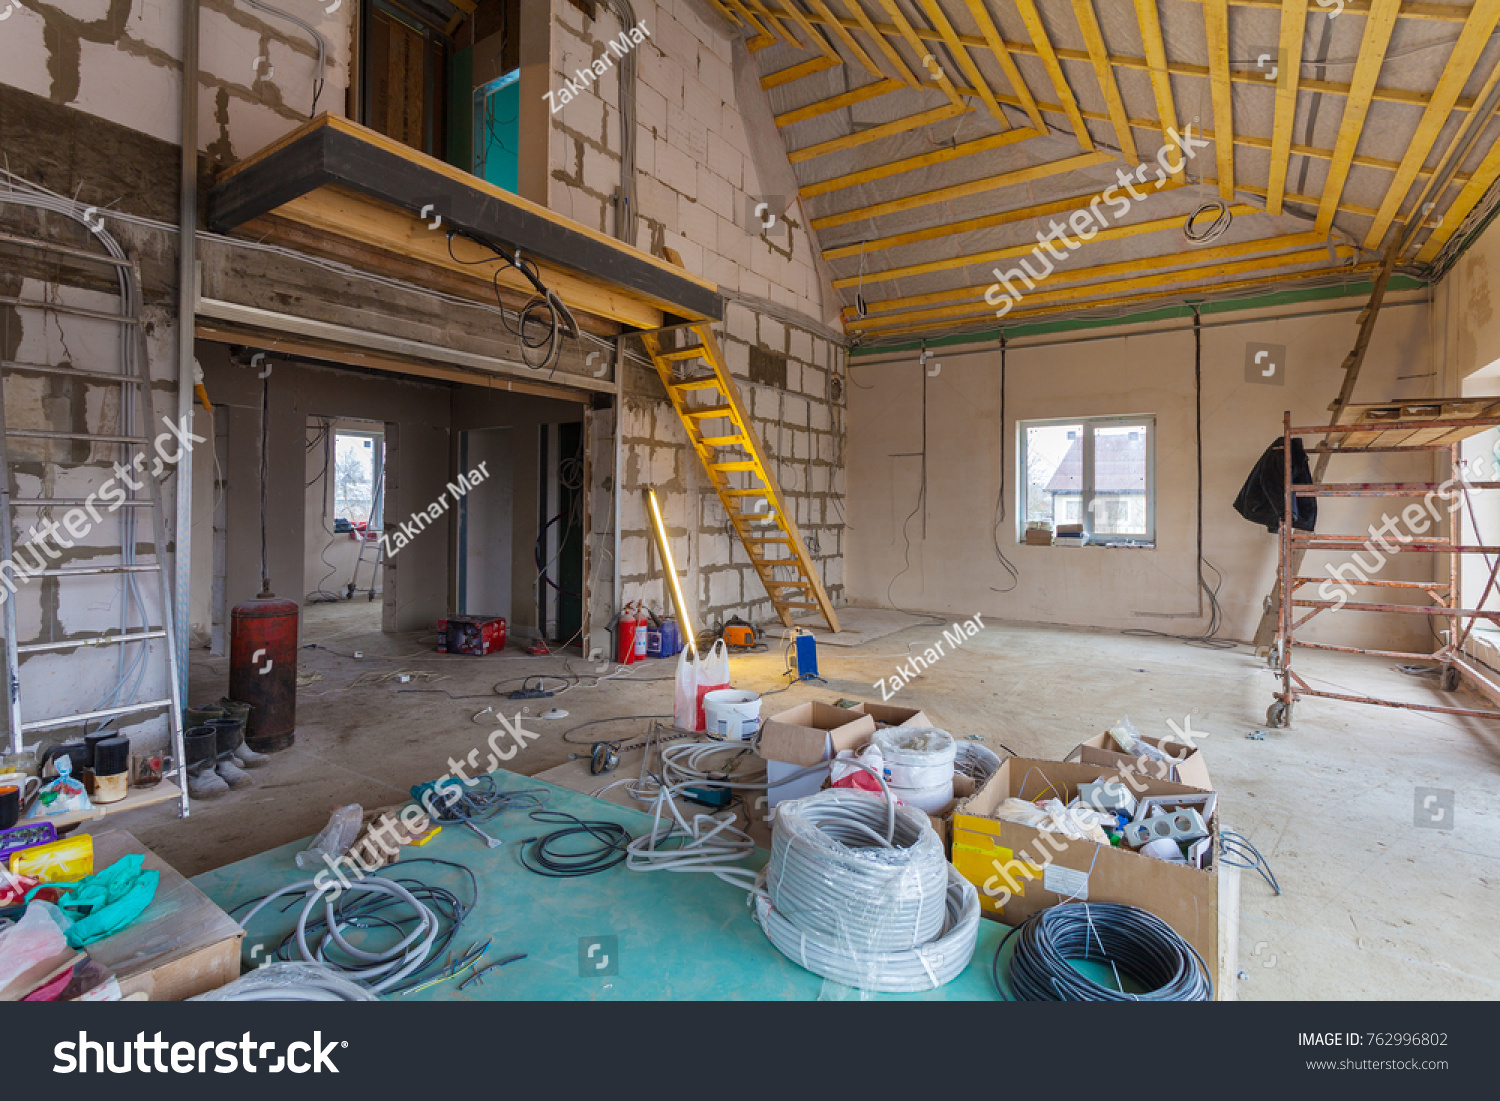 Materials Repairs Tools Remodeling House Building Stock Photo ...